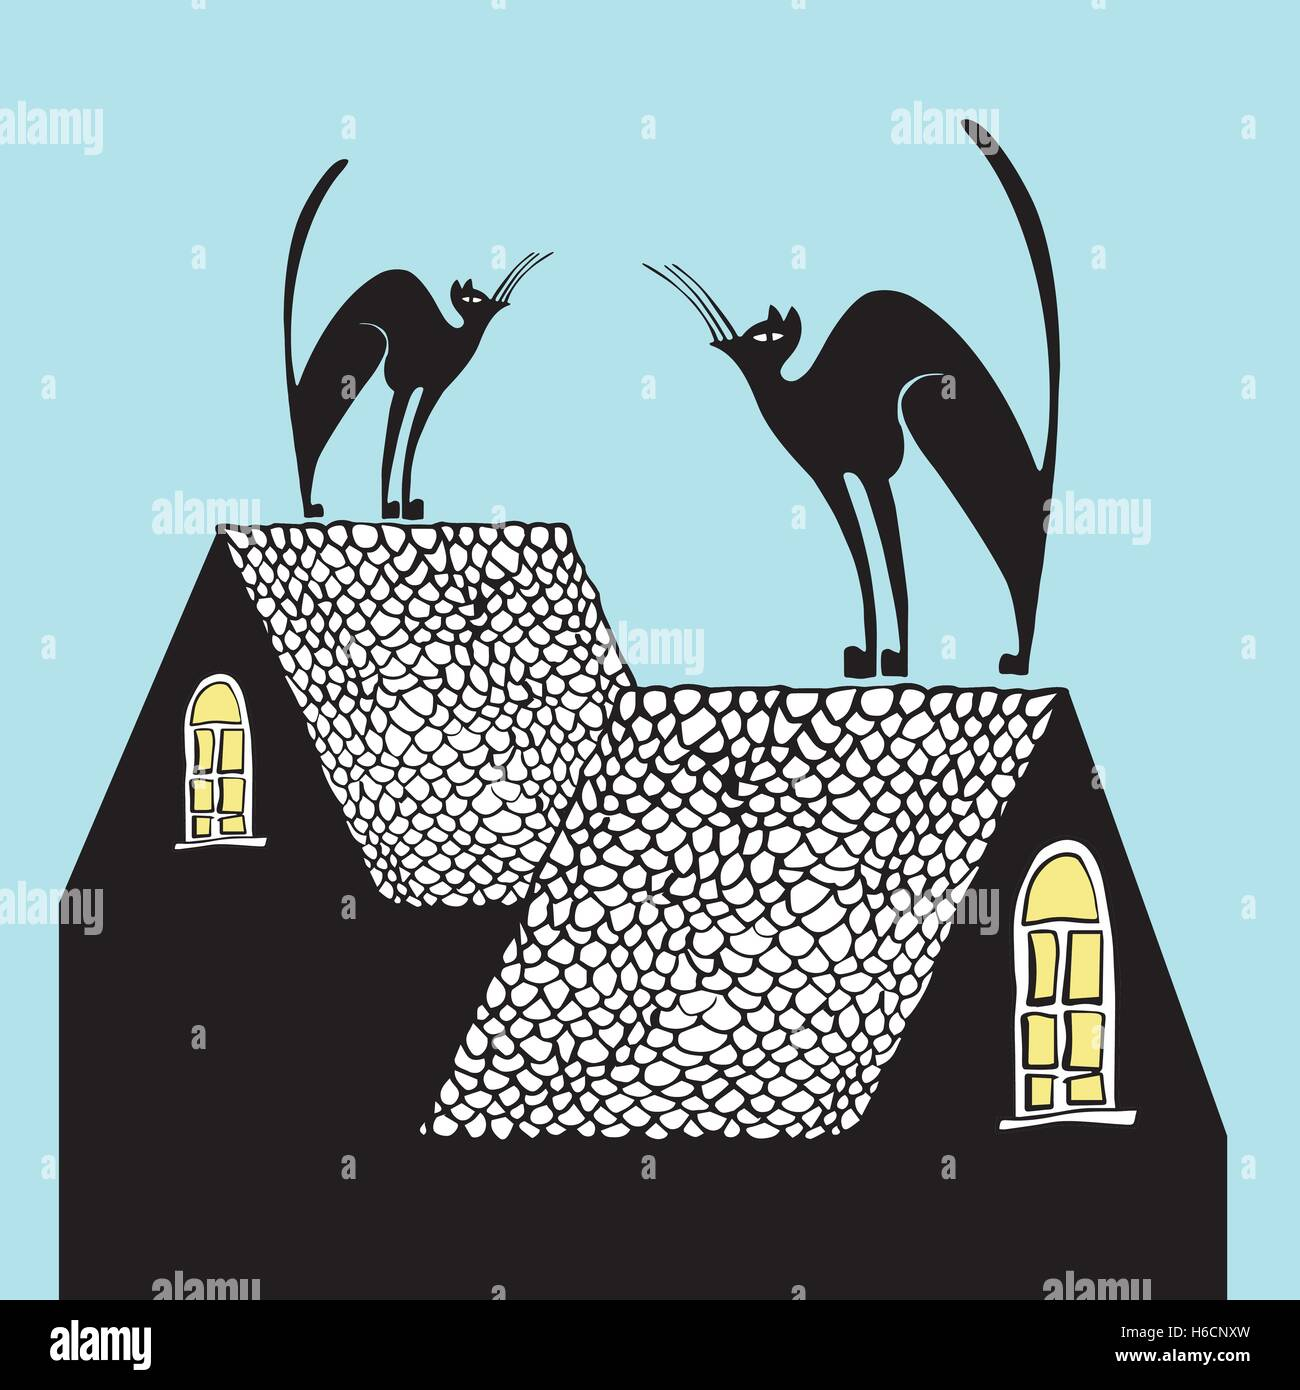 Hand drawn illustration black cats on the roofs - Stock Vector